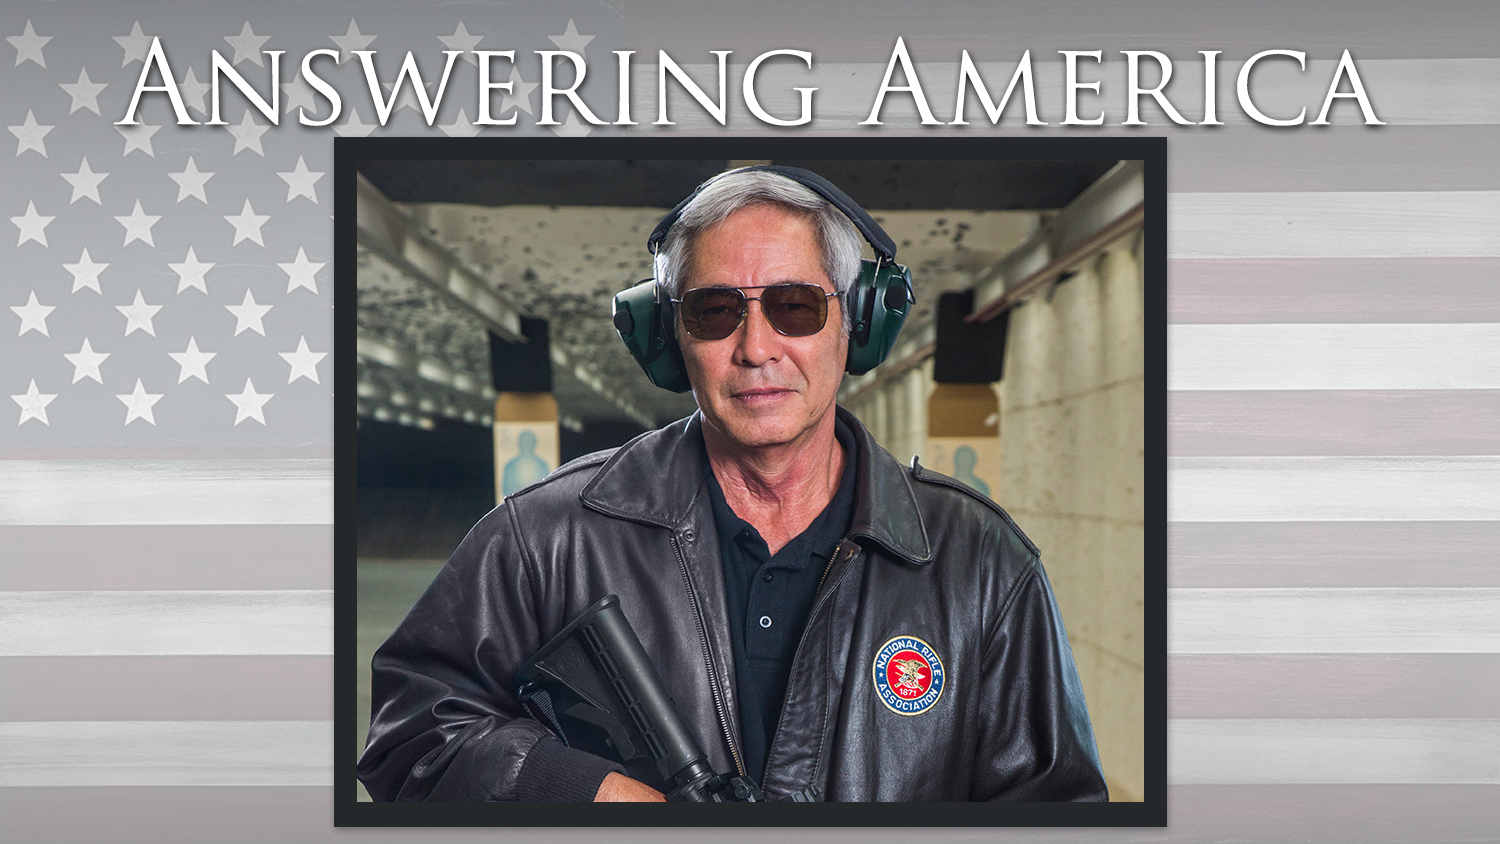 Answering America with NRA Second Vice President Willes Lee